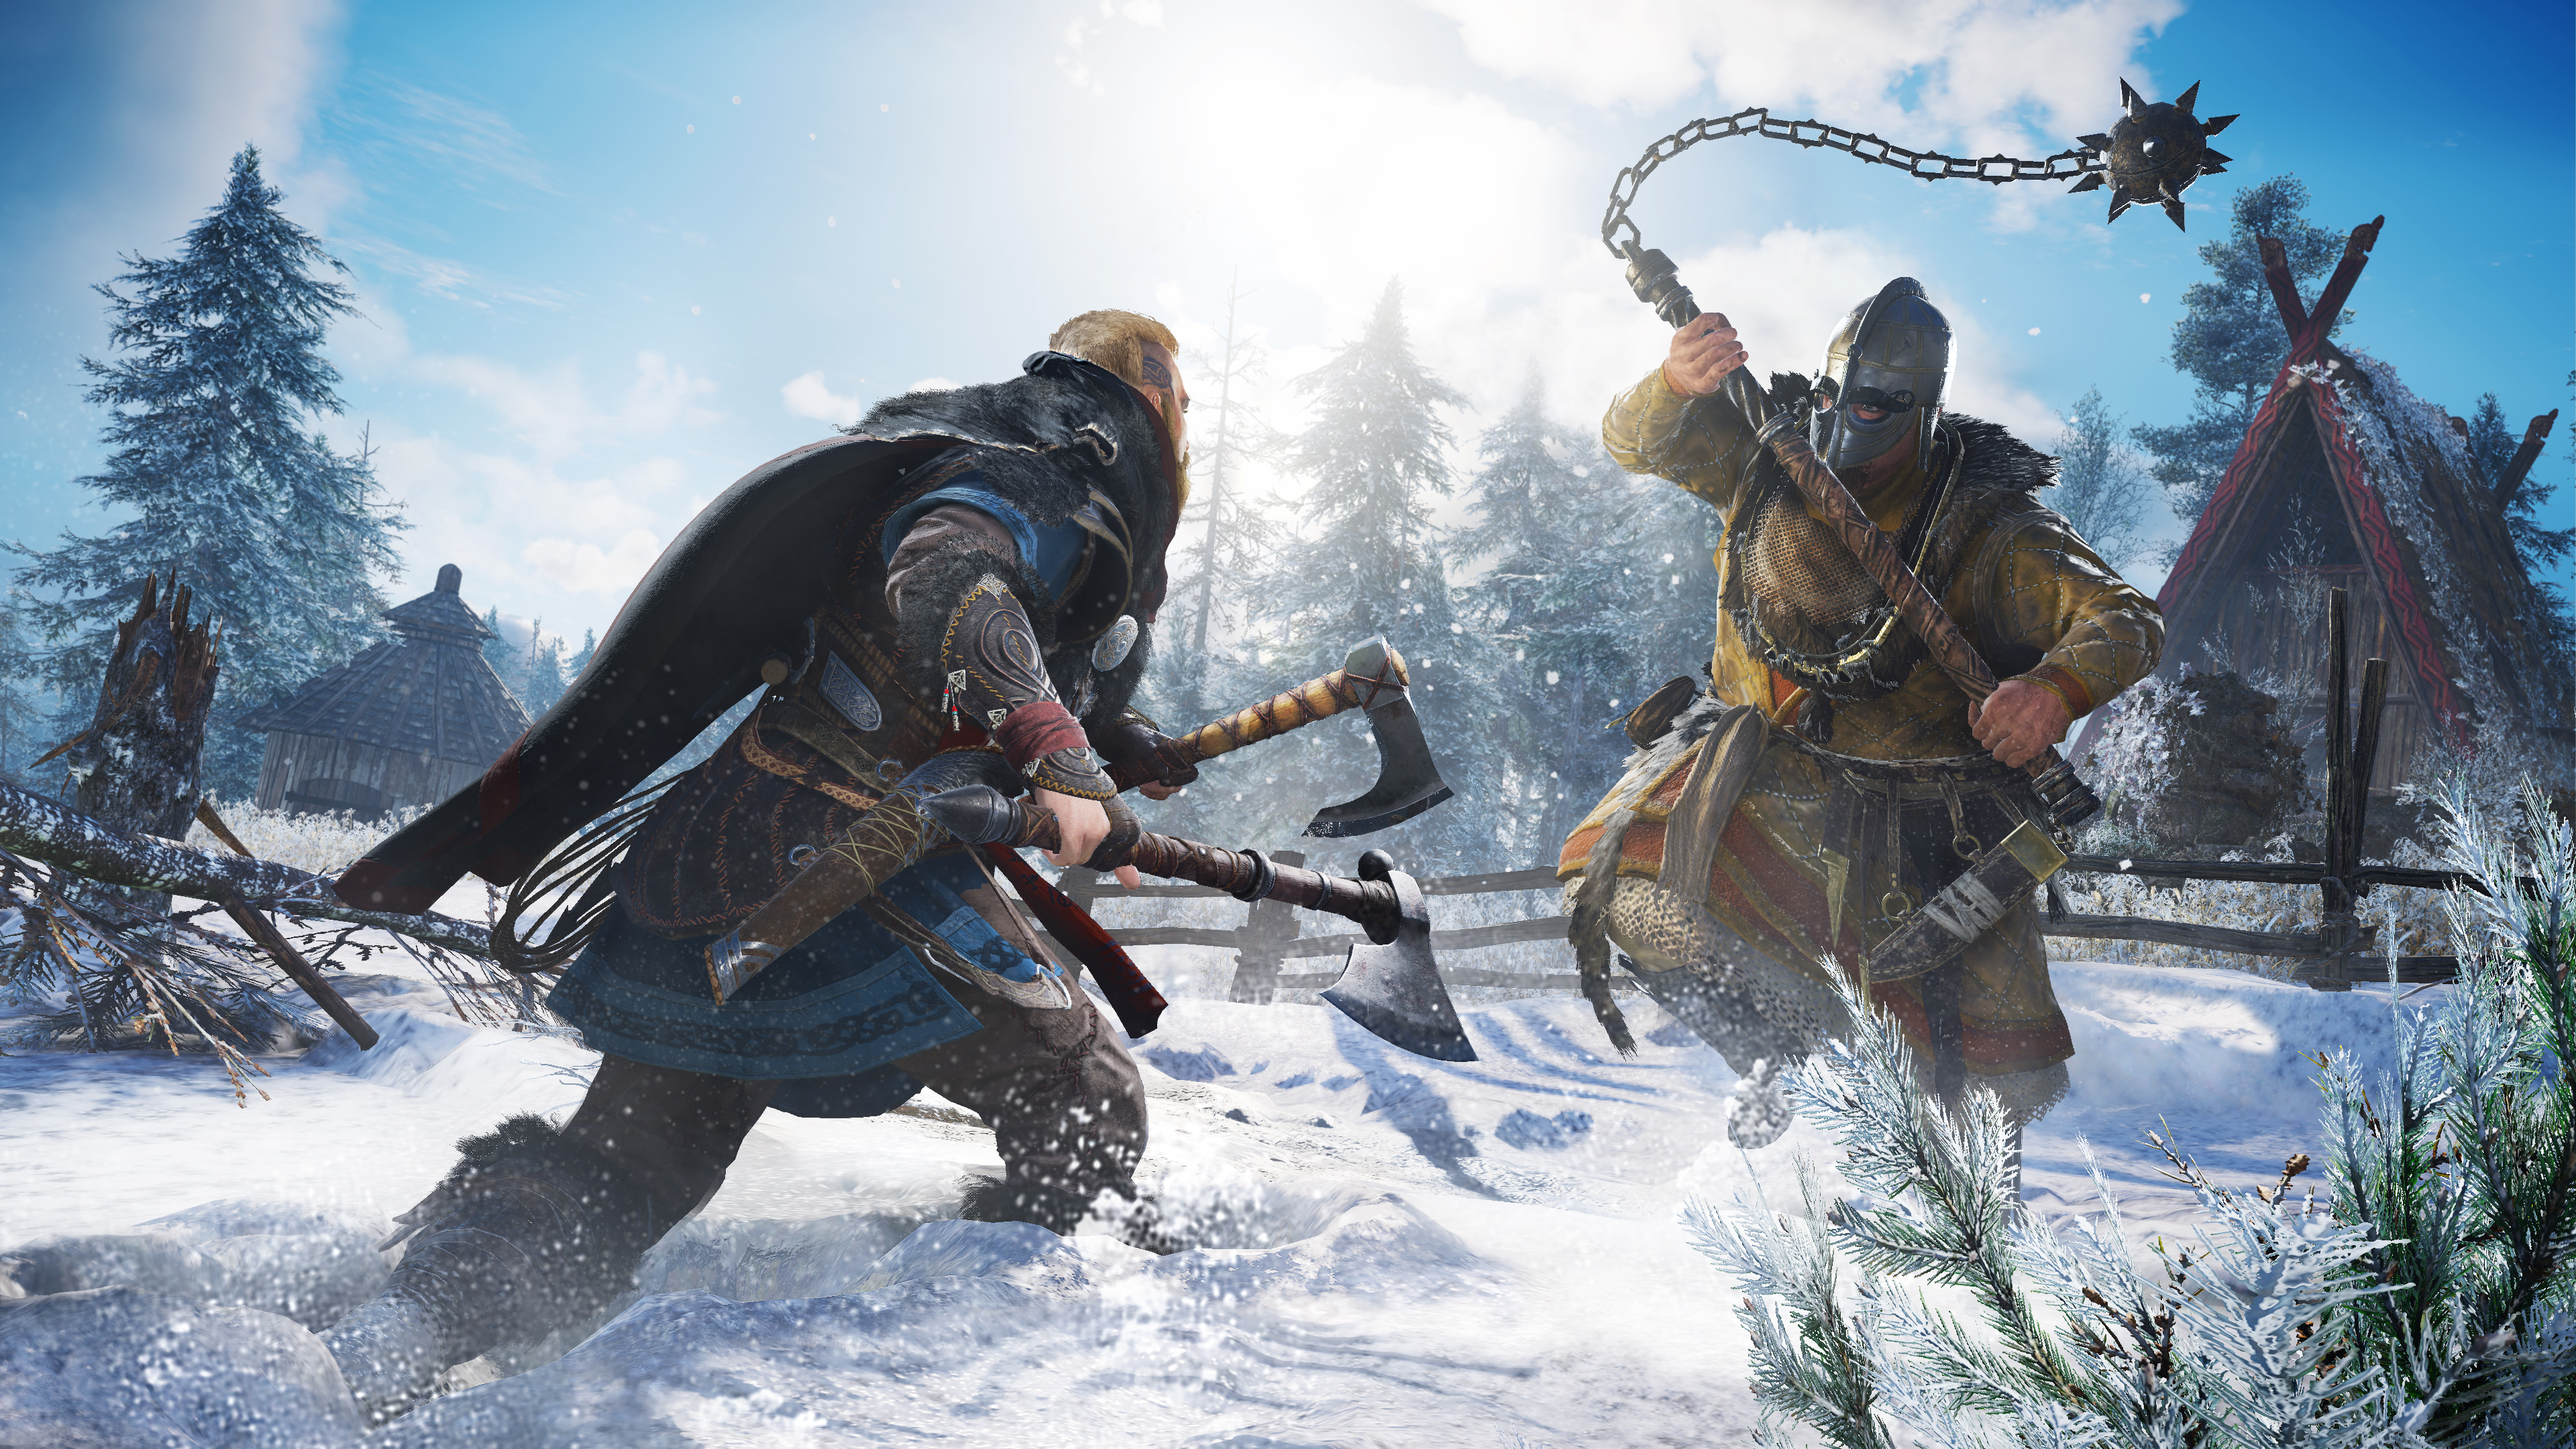 Скриншот №1 к Assassins Creed Вальгалла Ultimate PS4 and PS5